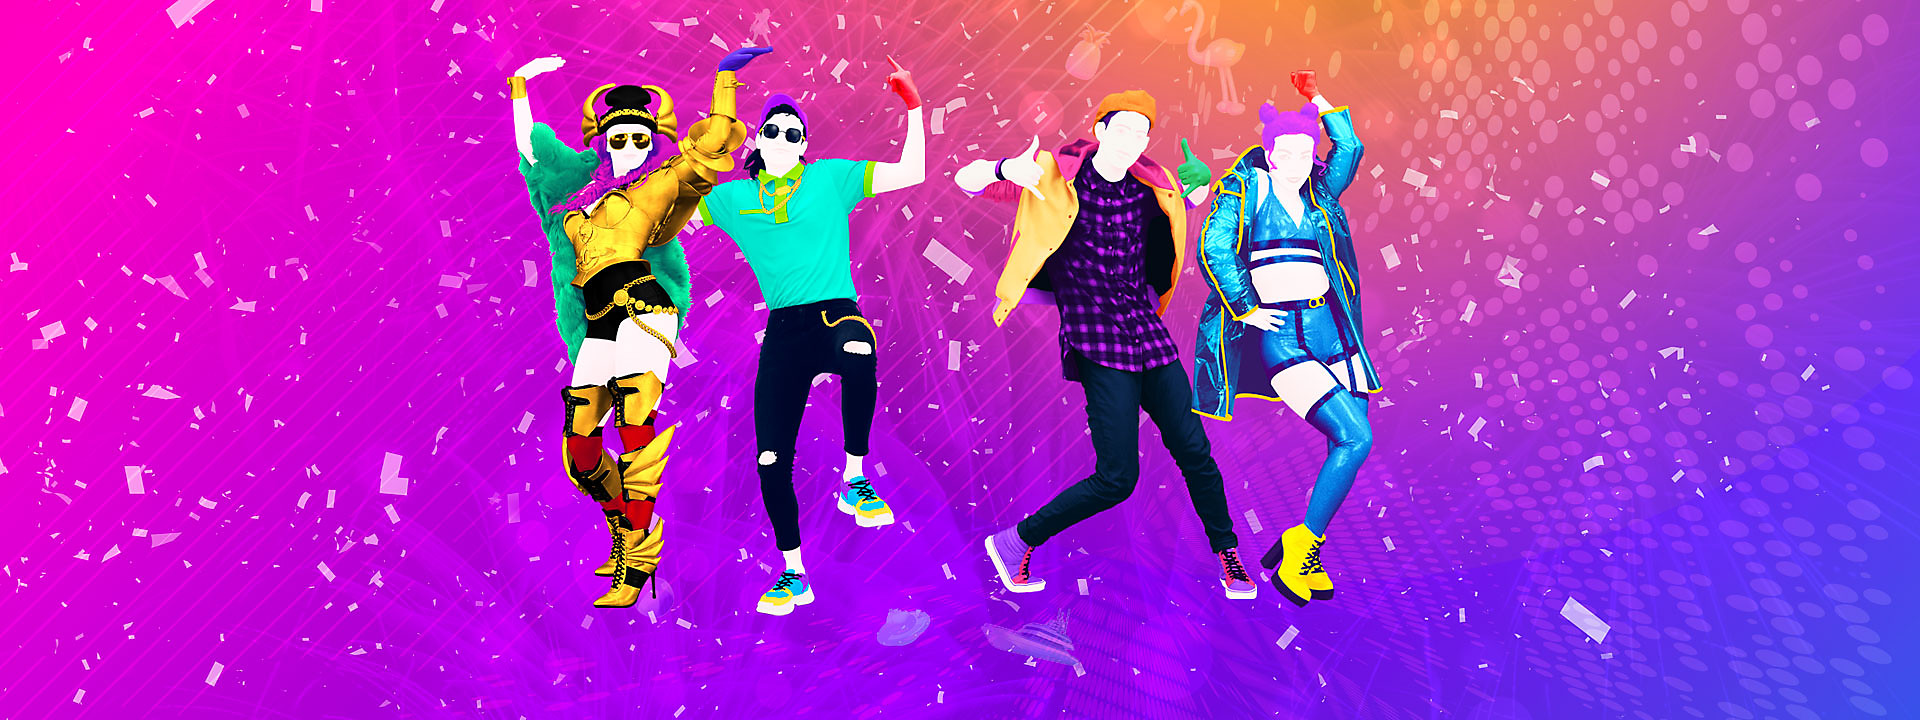 Just Dance 2020 Xbox One Gallery Wallpapers 1920x720